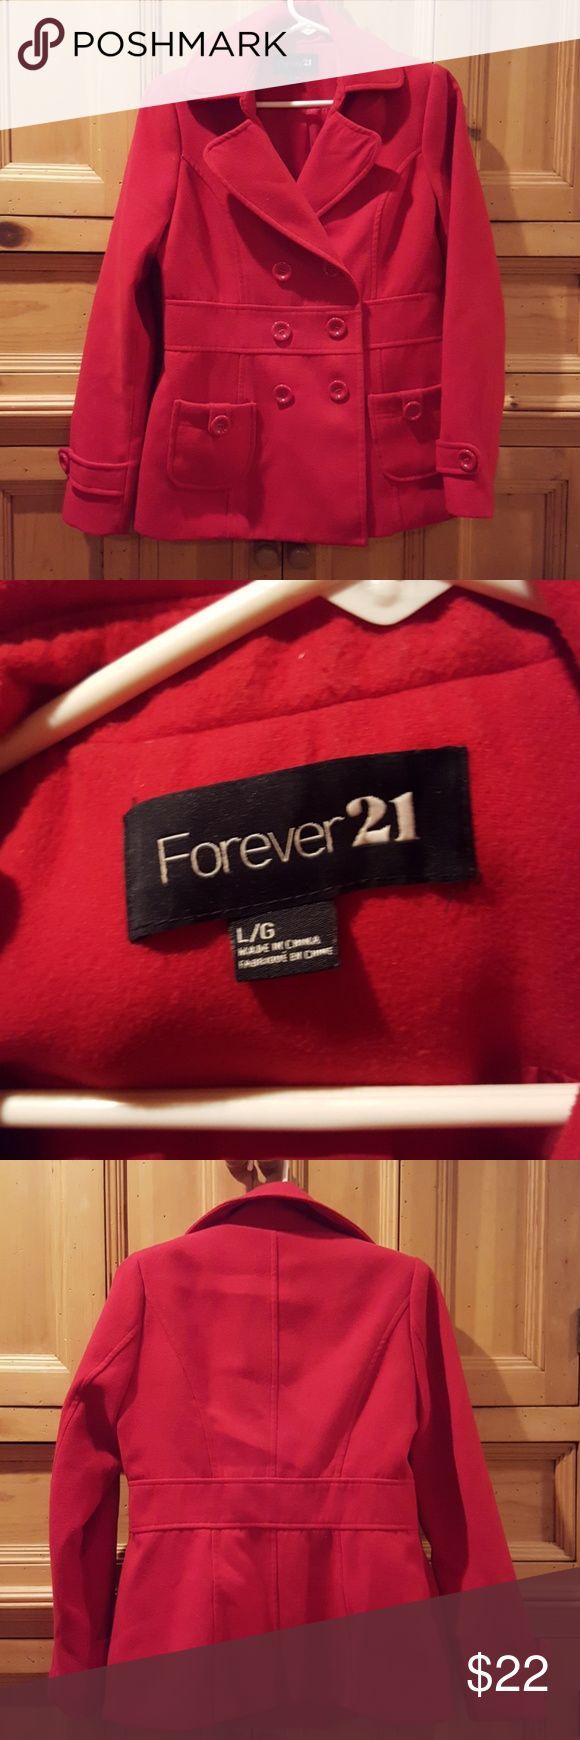 Forever 21 Red double breasted coat In excellent condition Forever 21 Jackets & Coats Pea Coats